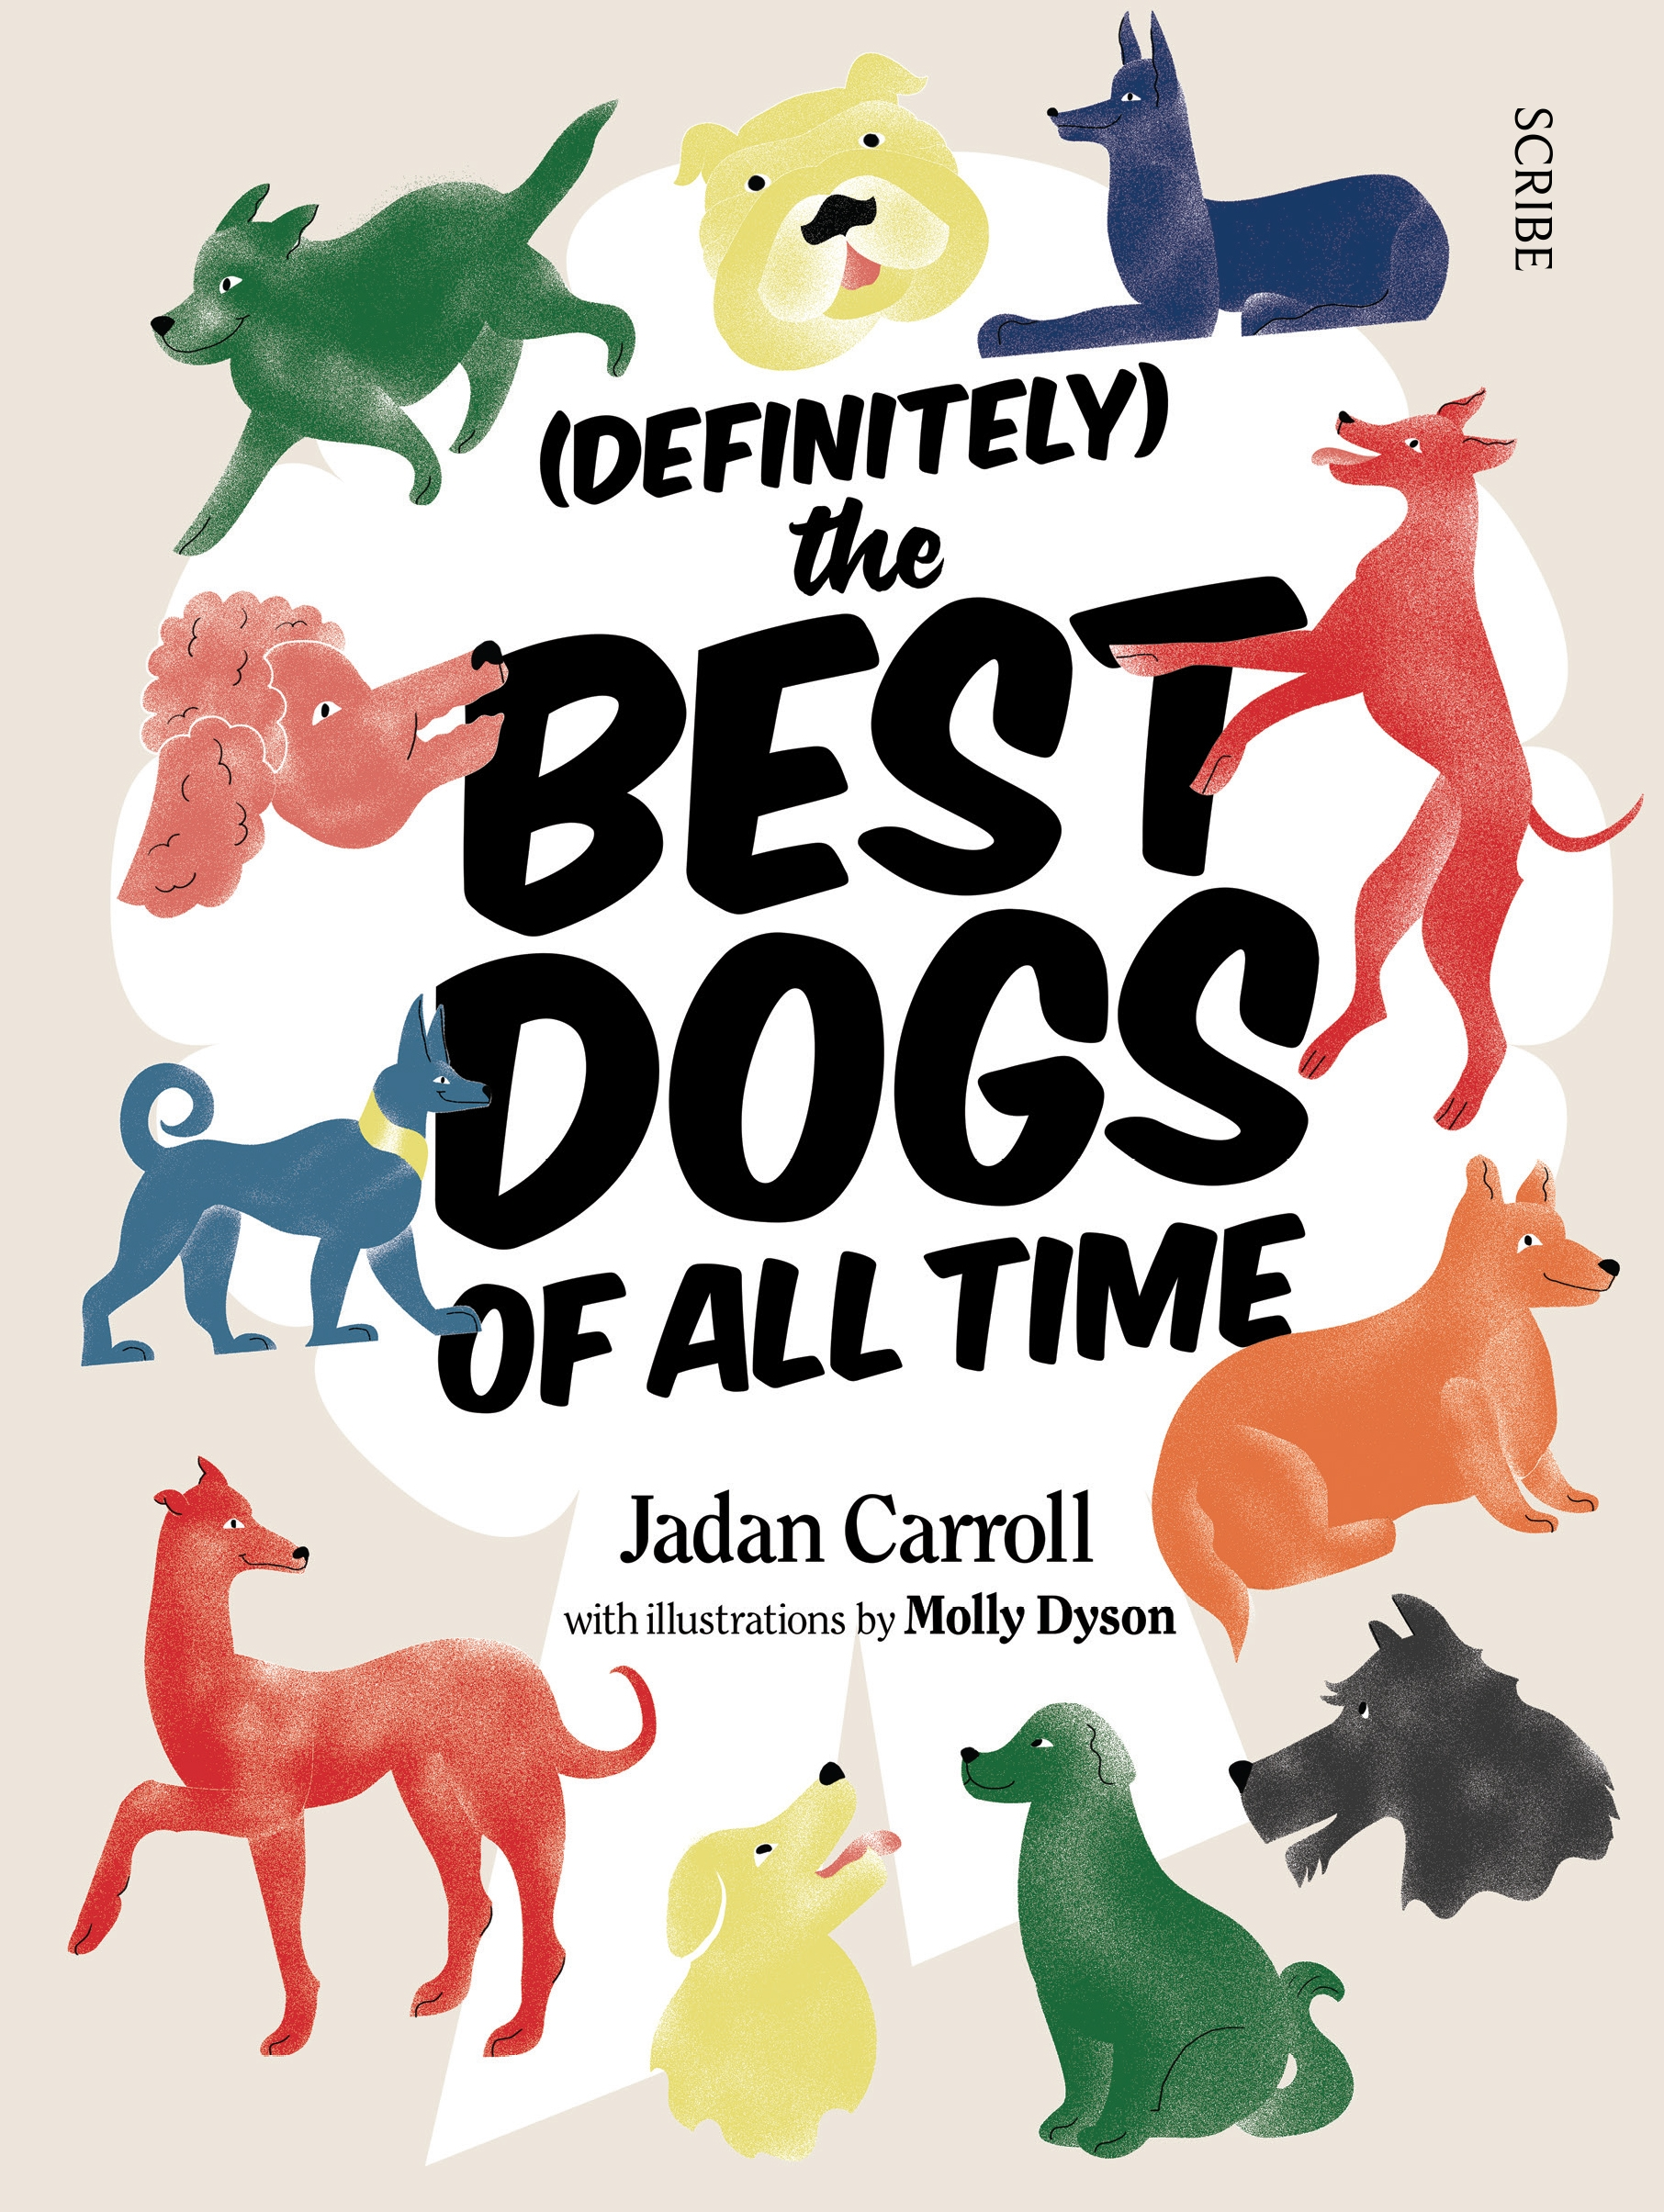 (Definitely) The Best Dogs of all Time